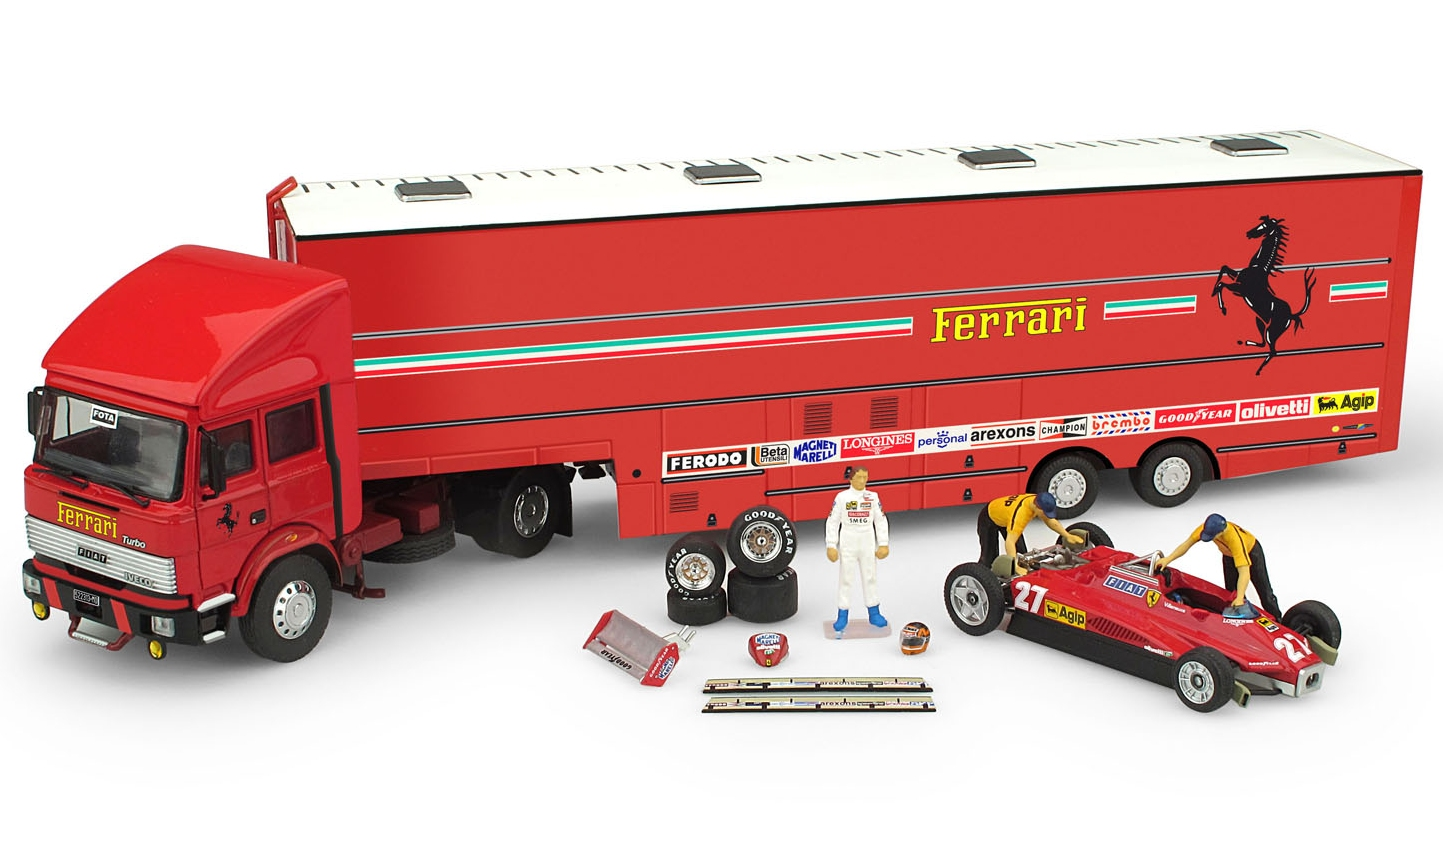 Ferrari Race Transporter set 1982 Fiat Iveco Truck+ 1xFerrari 126C2 +accessories by brumm